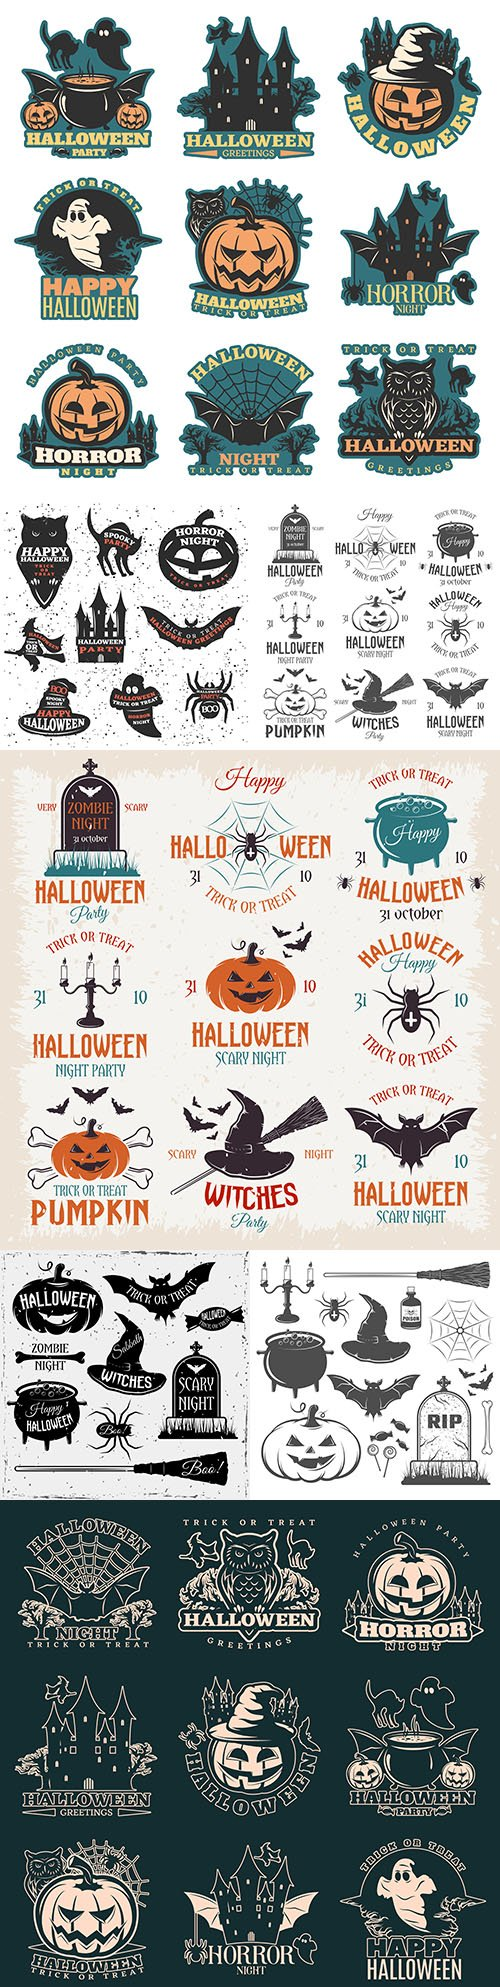 Halloween holiday elements and painted illustration emblems